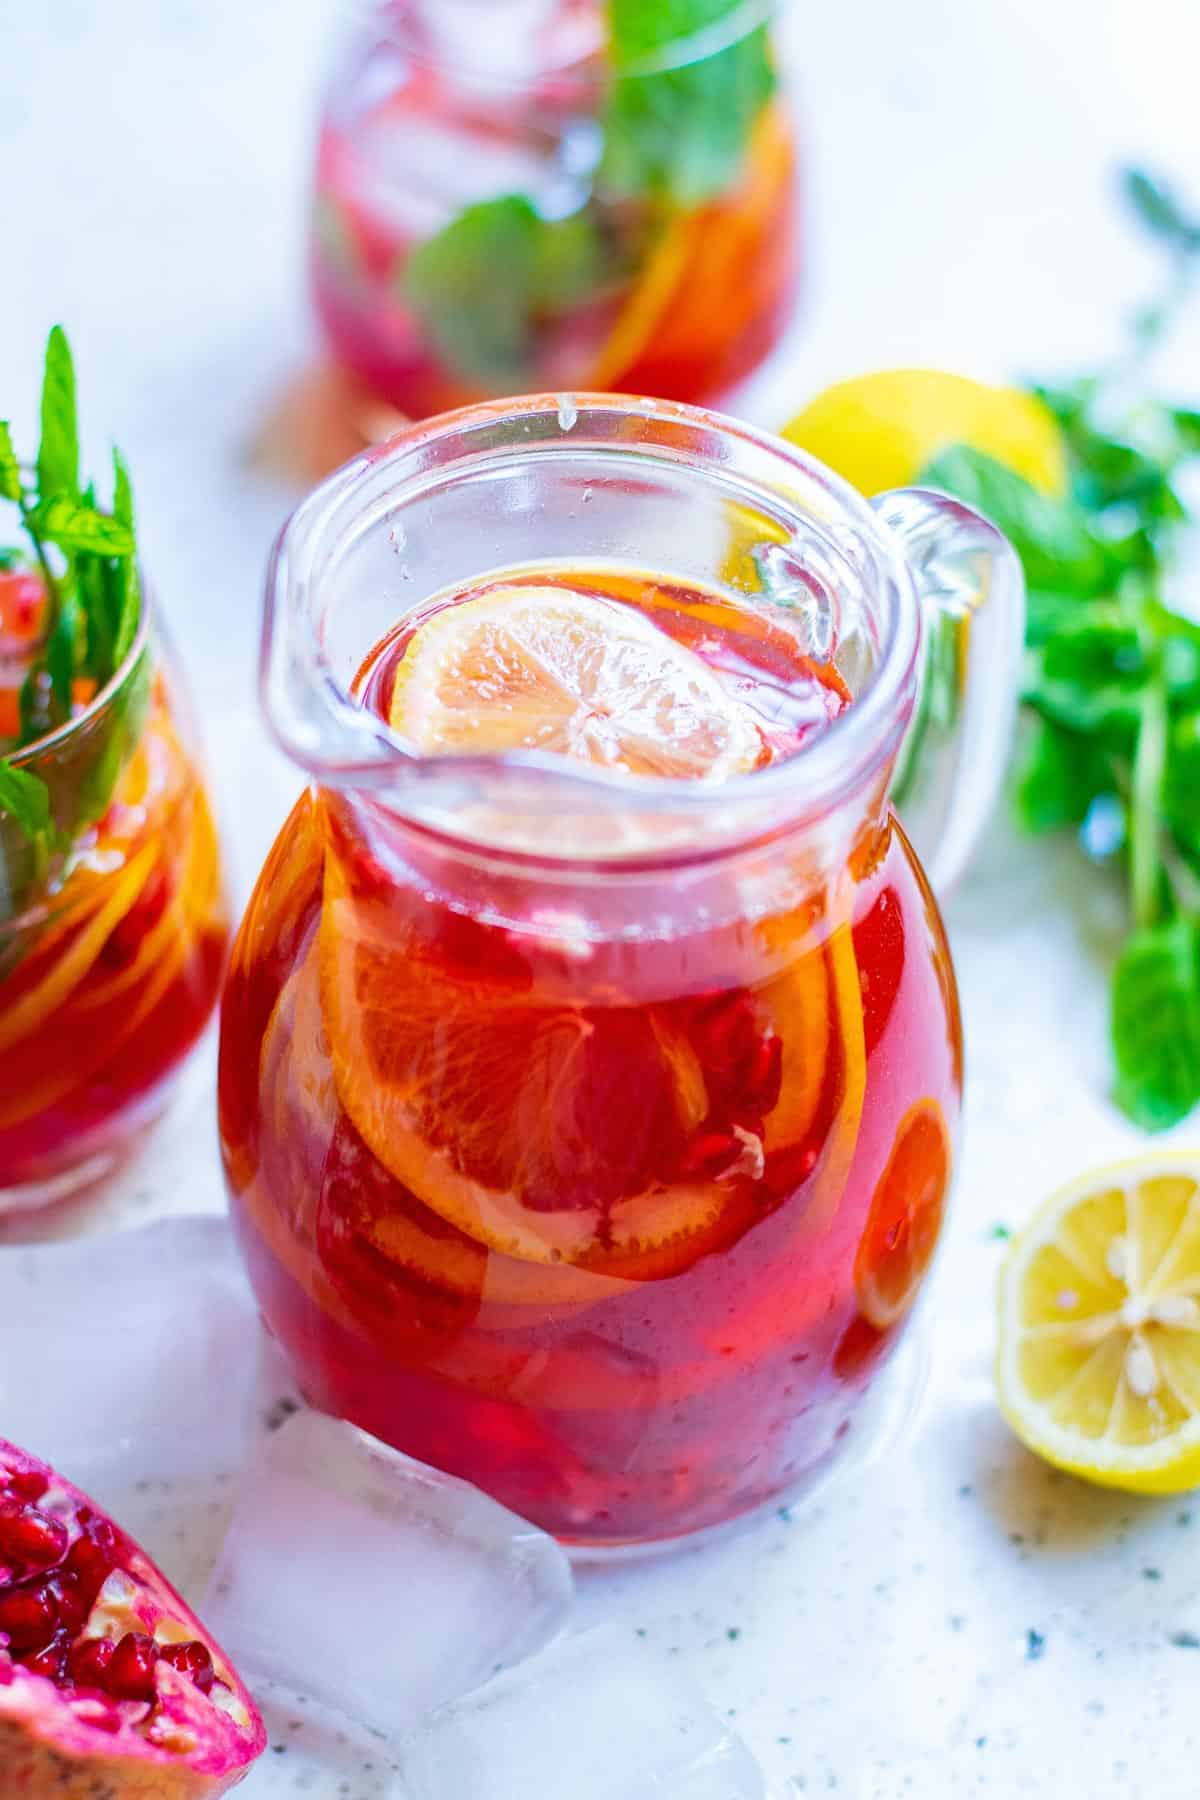 Pitcher of red punch with colorful fresh garnishes.